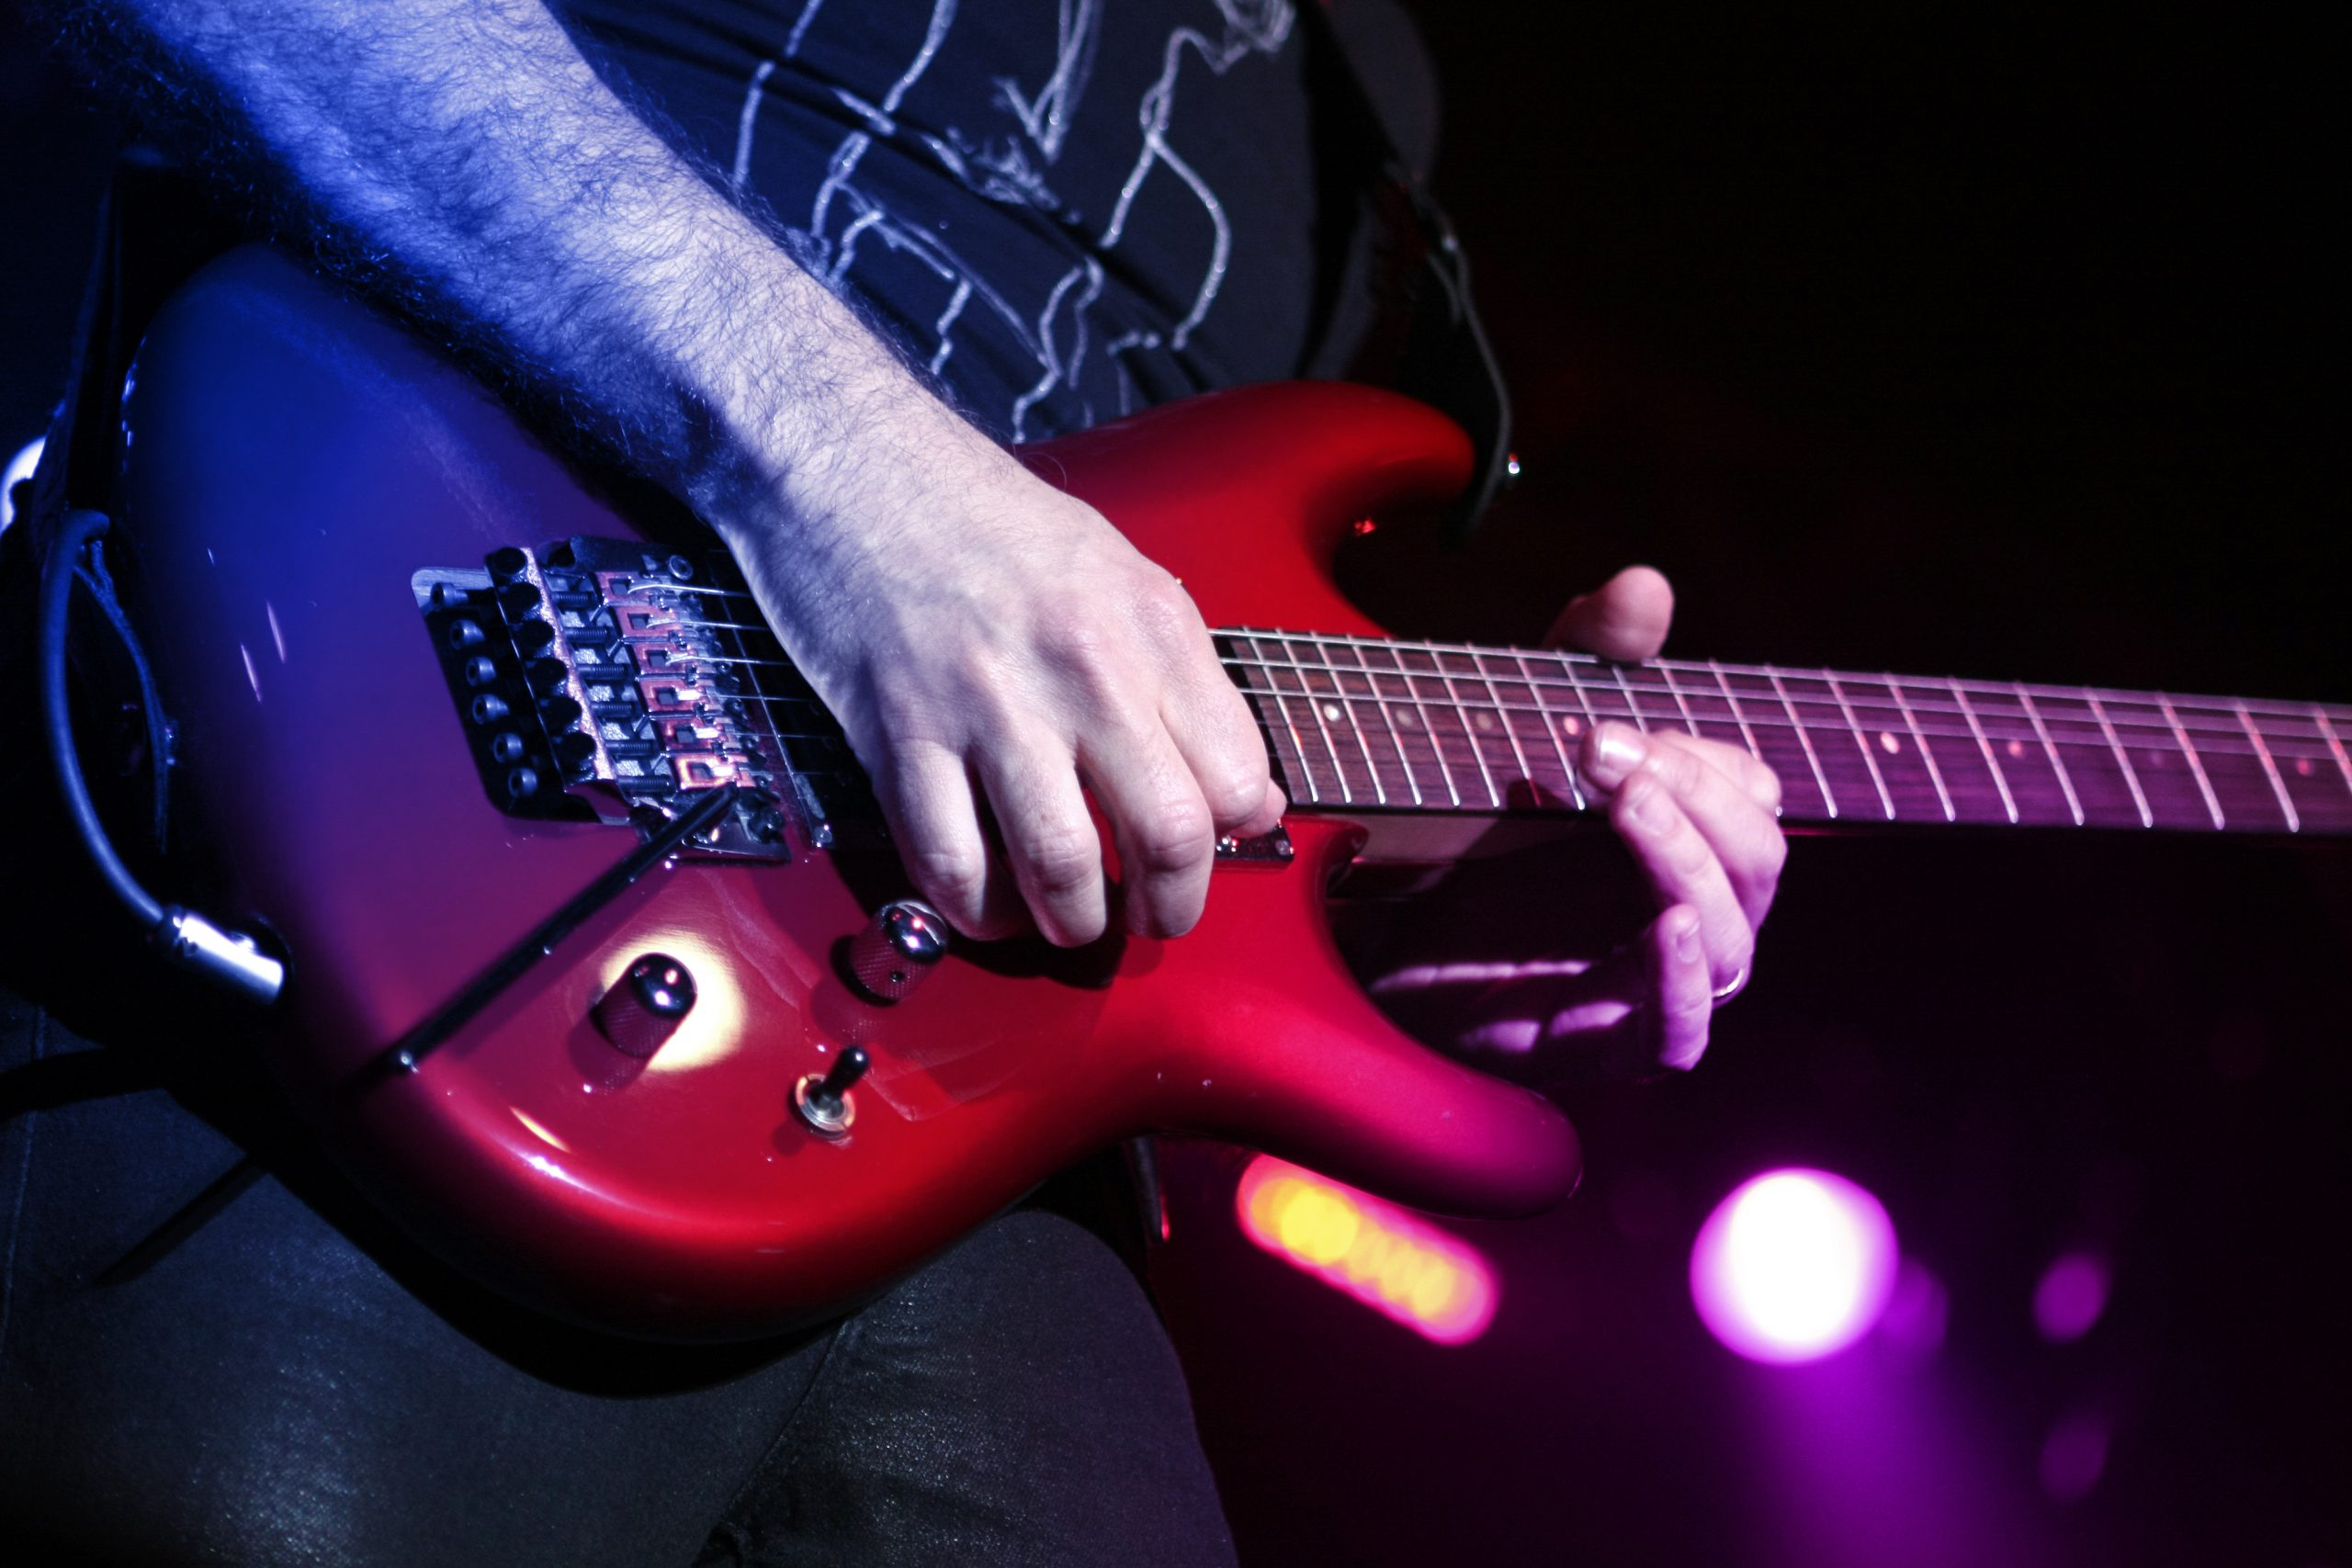 Guitar player with electric guitar